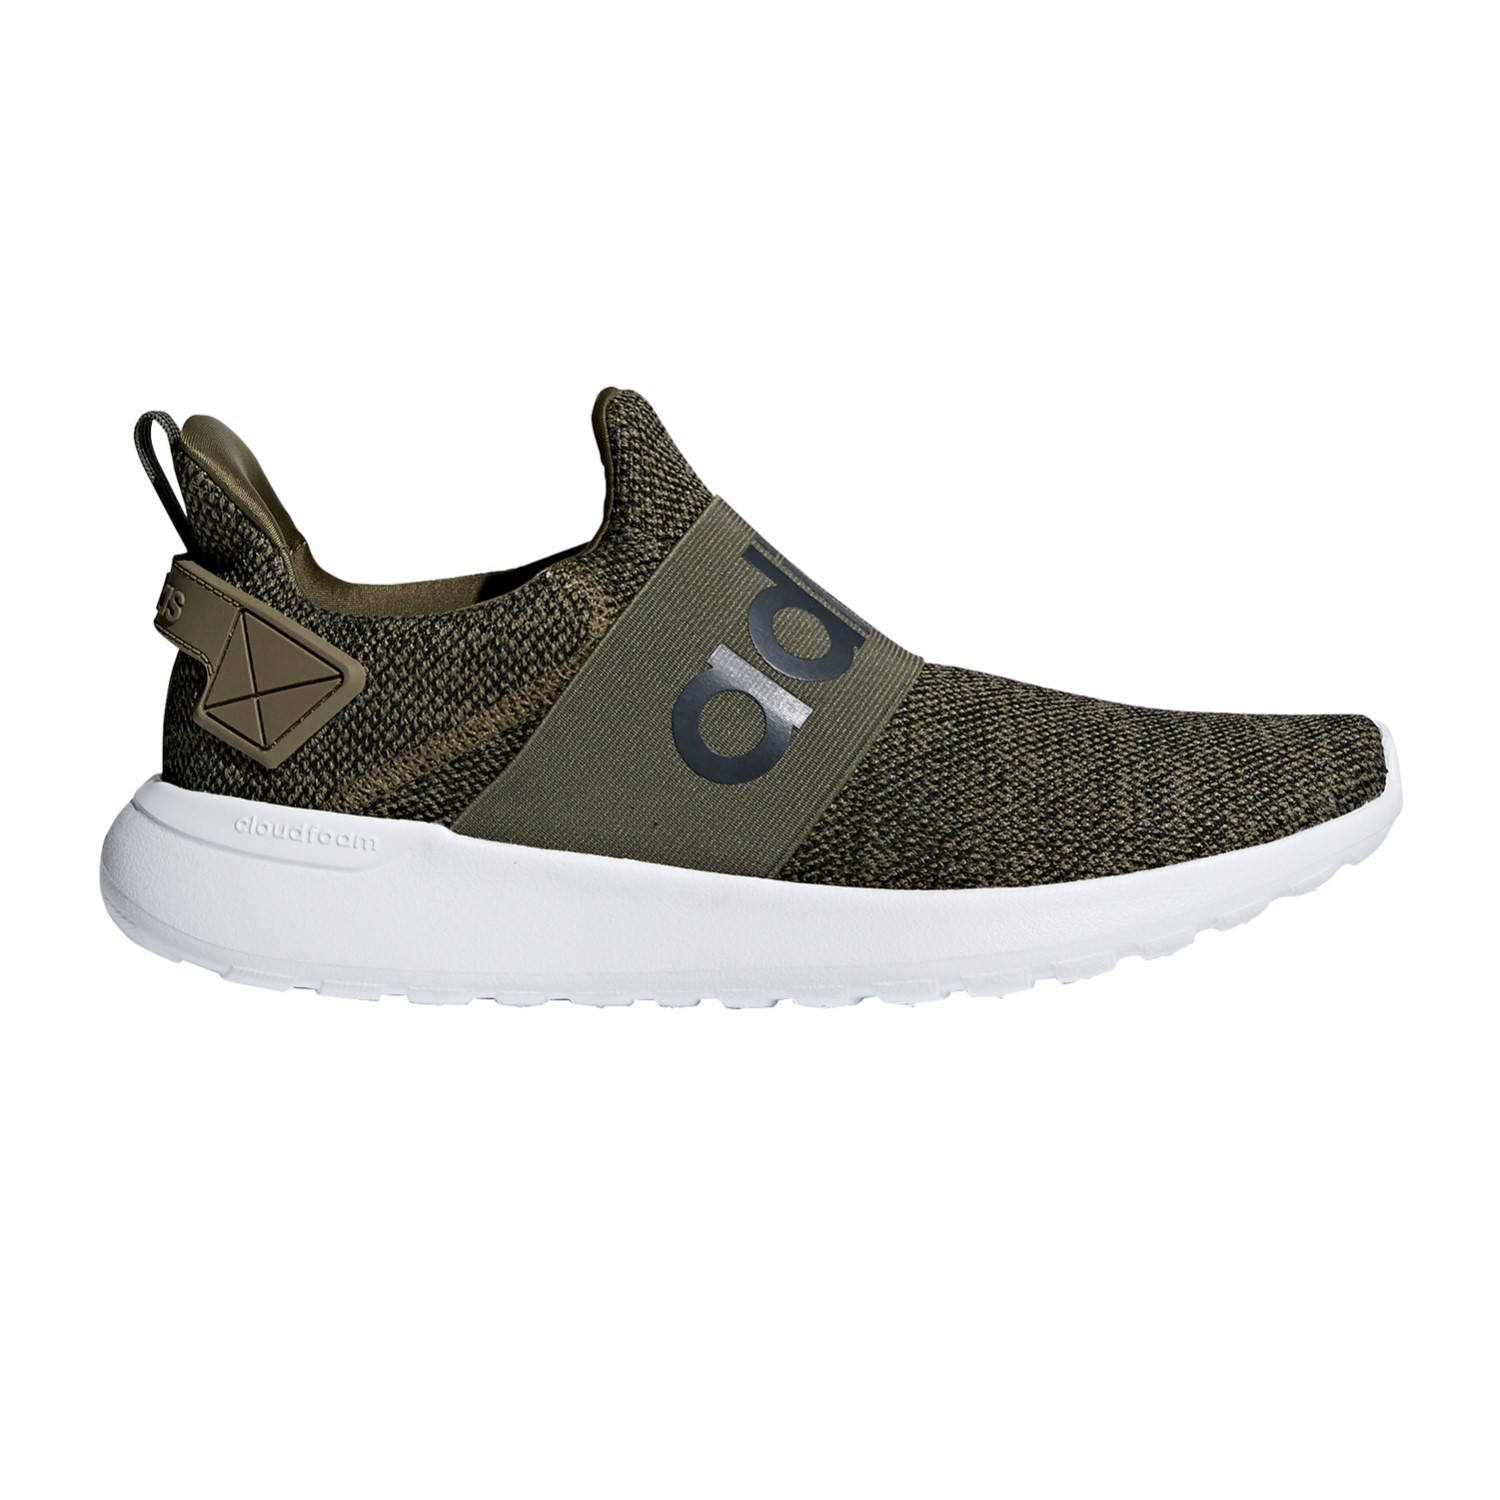 543199f758b2 Adidas Cloudfoam Lite Racer Adapt - Mens Casual Shoes - Olive Carbon ...